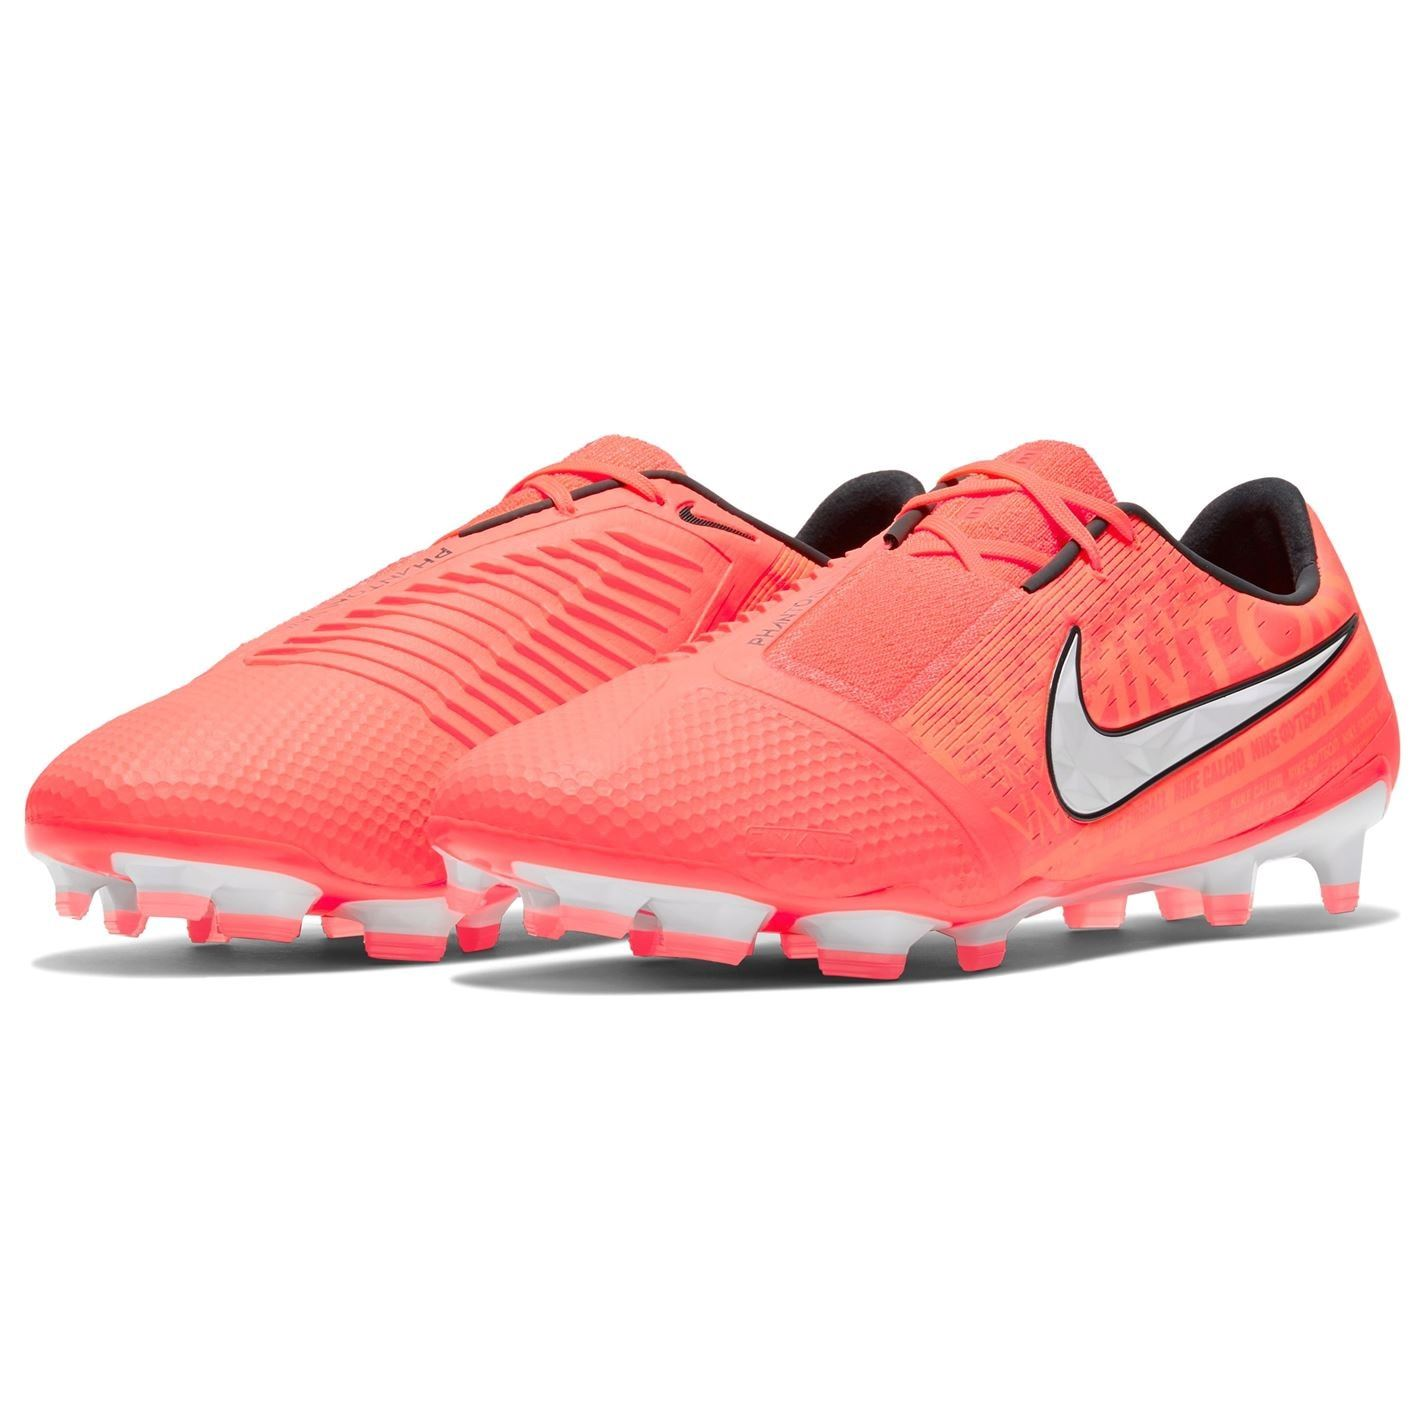 Nike-Phantom-Venom-Elite-Homme-FG-Firm-Ground-Chaussures-De-Football-Chaussures-de-foot-crampons miniature 5